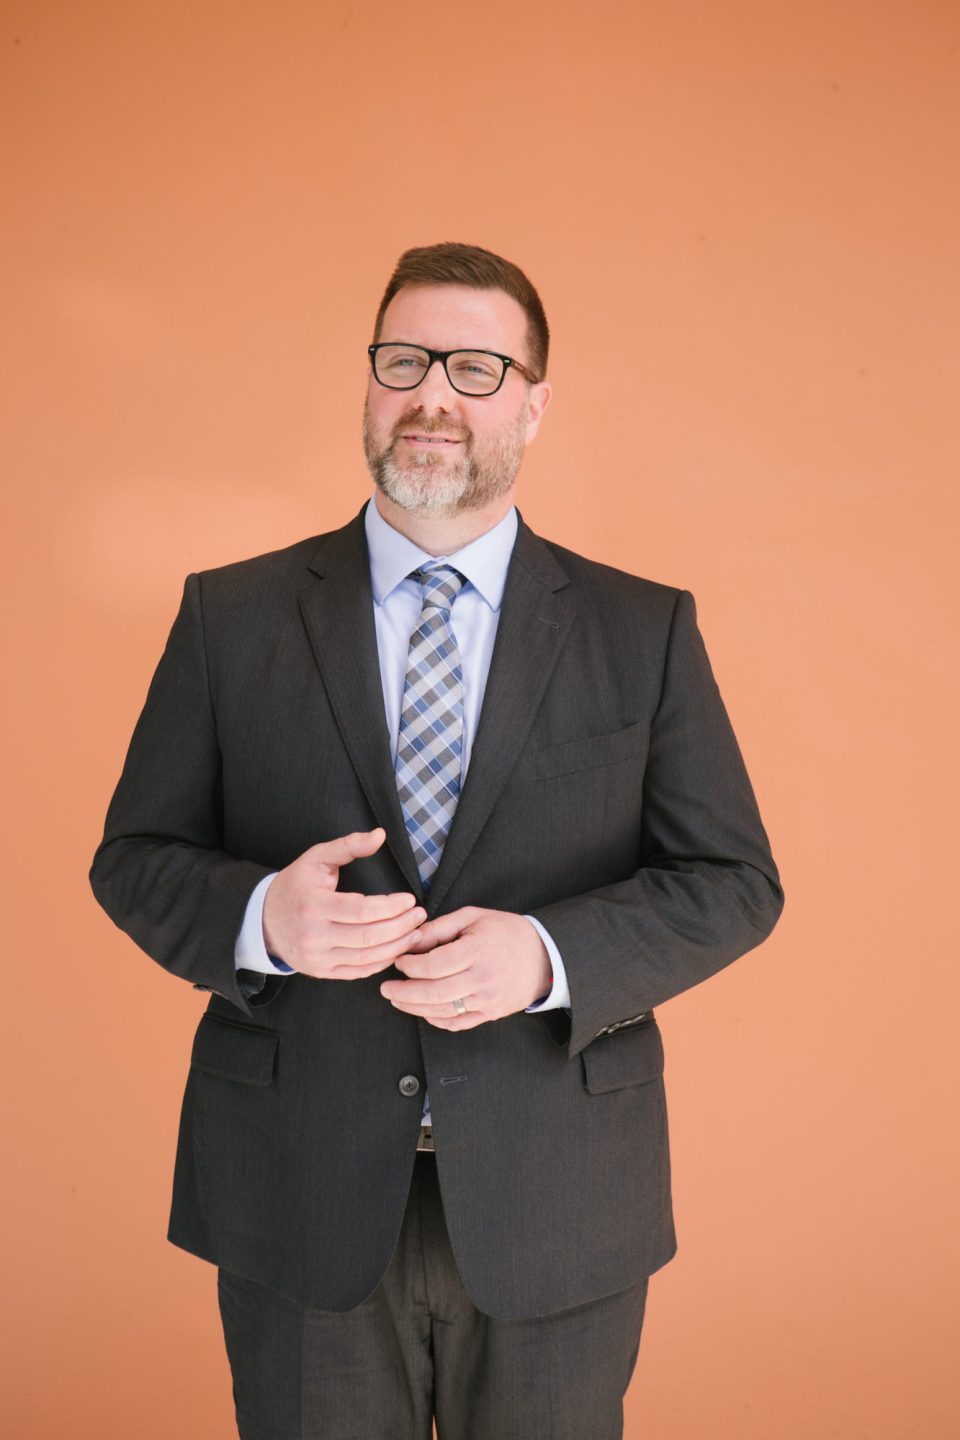 """St. Thomas University Provost Jeremy Moreland. In graduate programs at other schools, says Moreland, """"Students feel like a number. People get lost."""""""